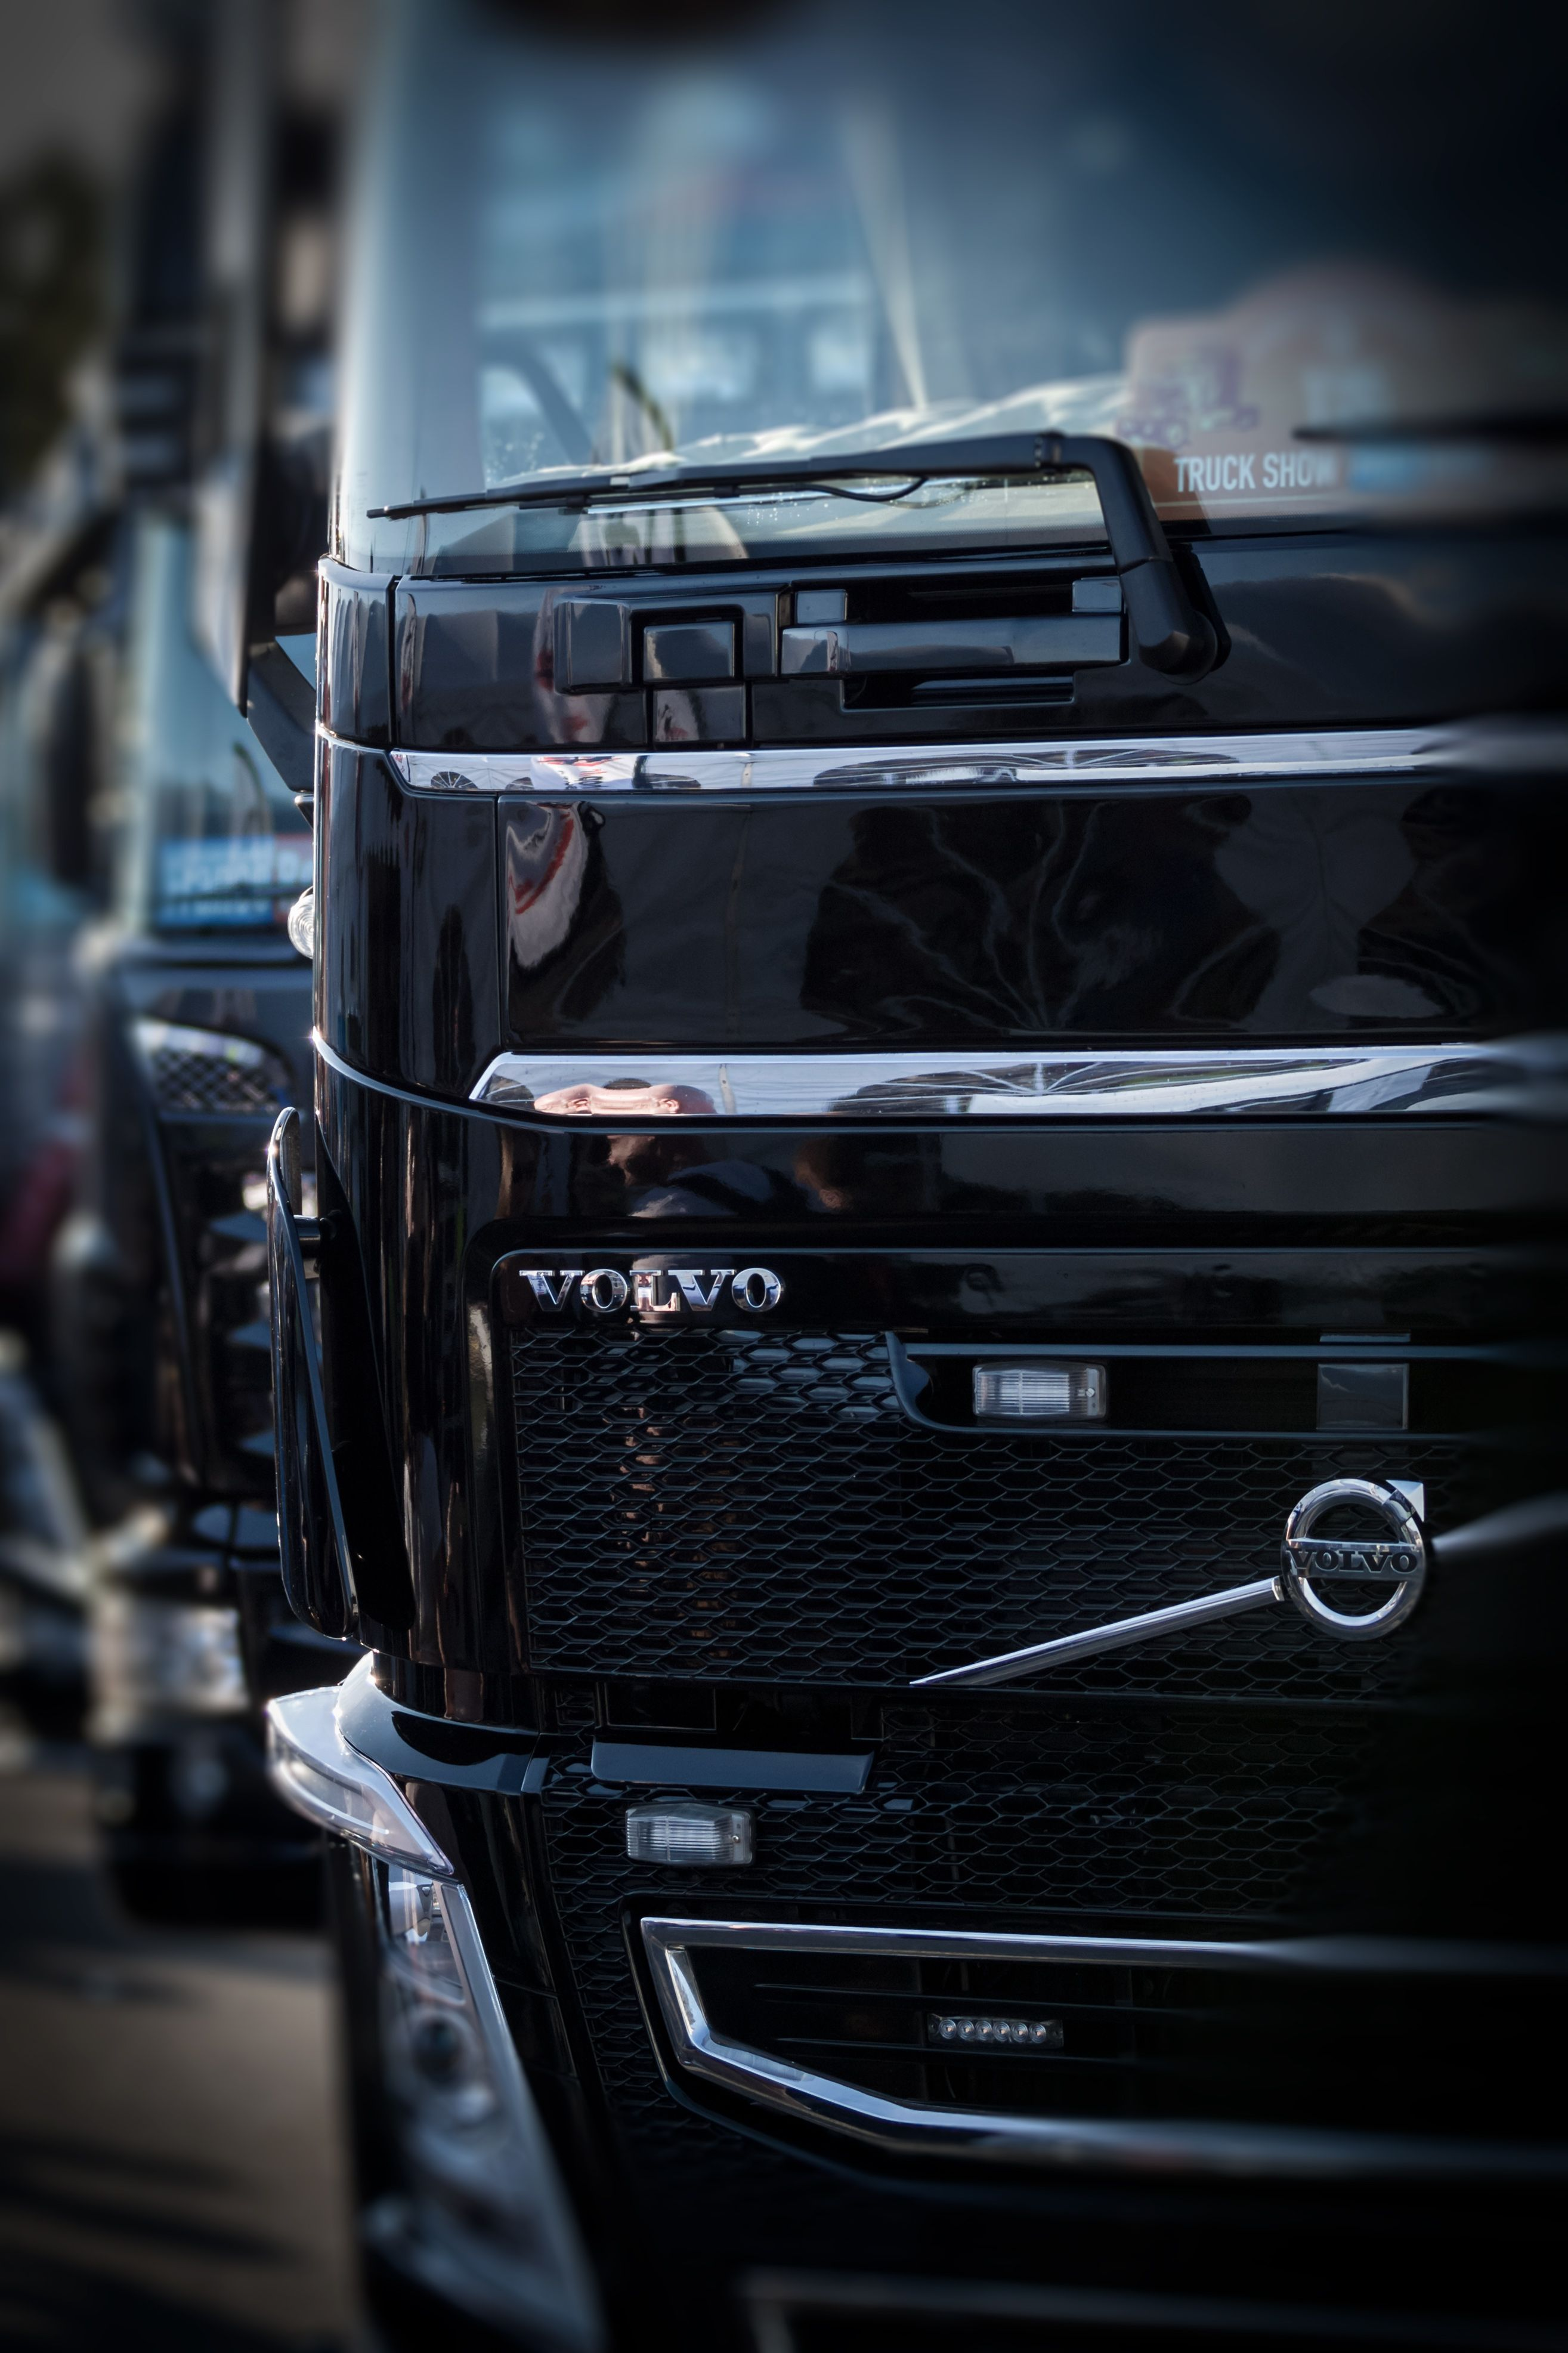 2629x3944 Volvo Wallpapers - Free High Resolution Trucks Backgrounds ...